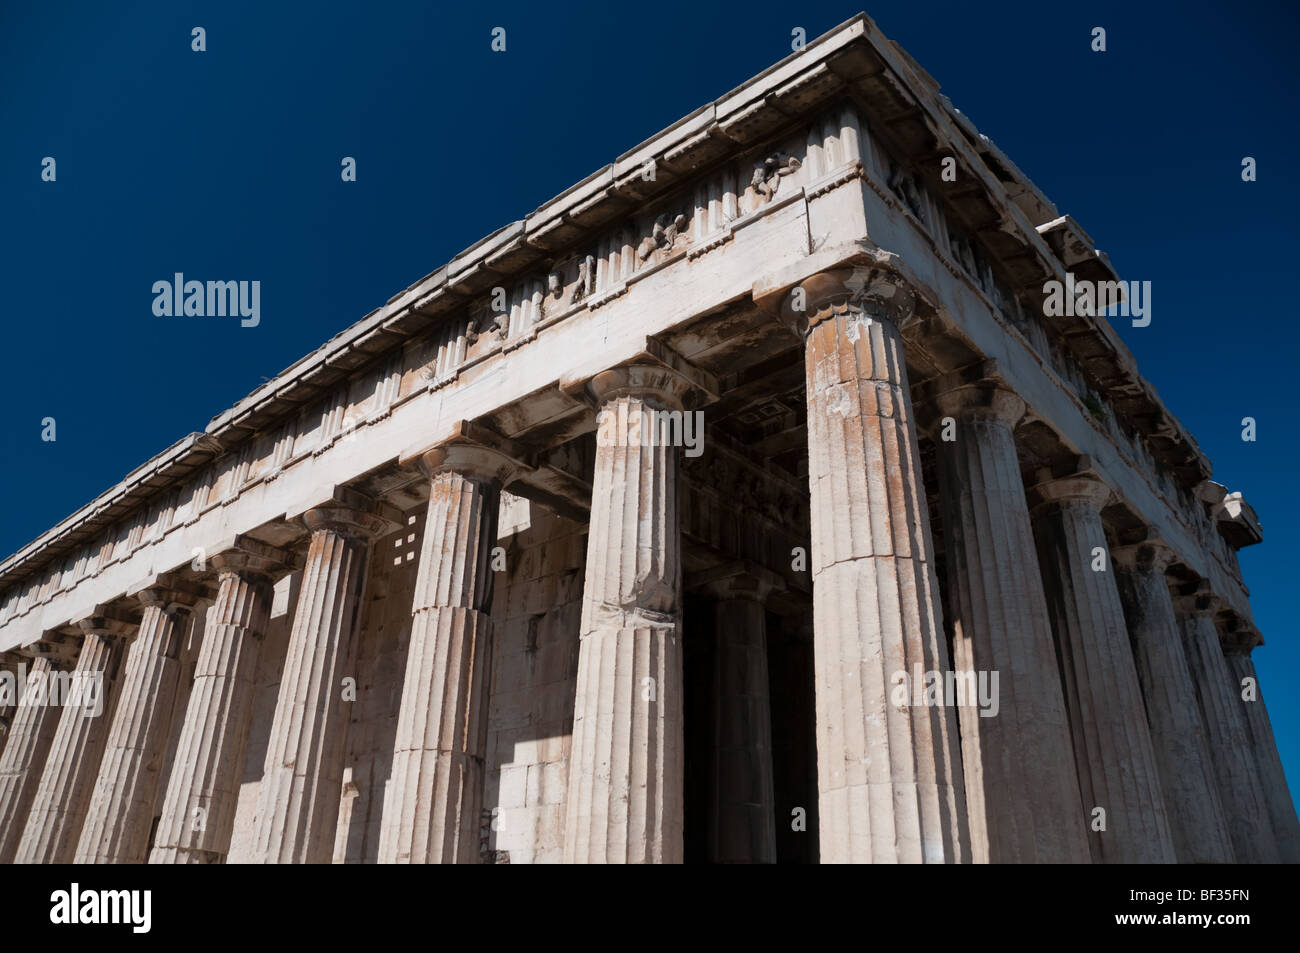 Temple of Ares, Acropolis, Athens, Greece - Stock Image